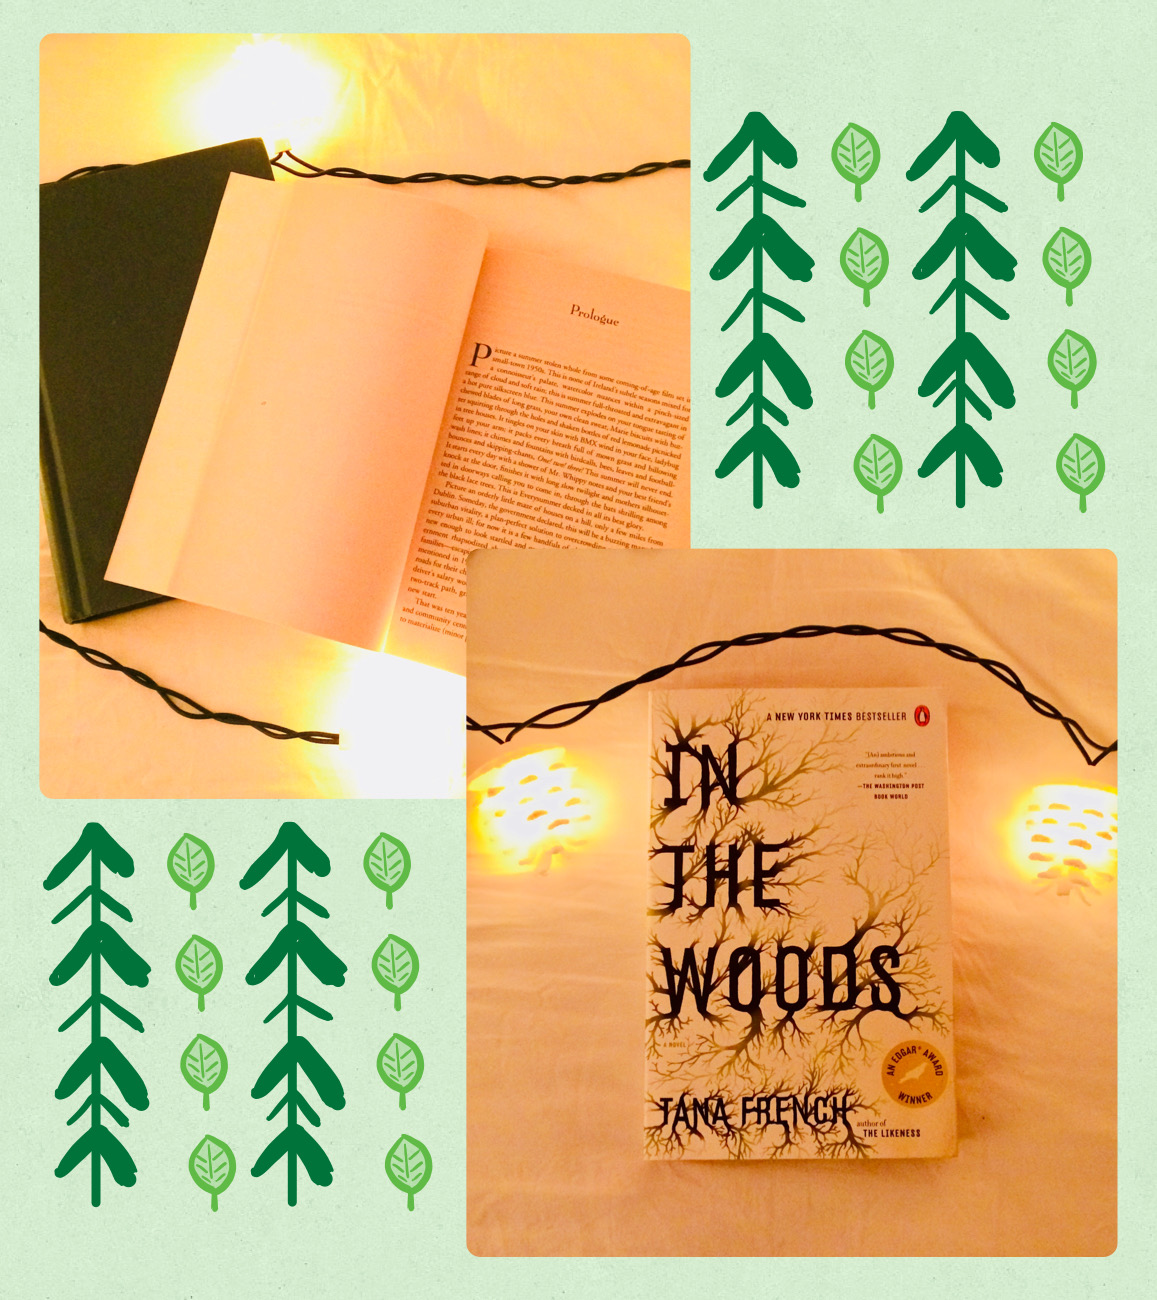 Pictured from left to right is the In the Woods prologue, which will immediately get you hooked to the novel, and the cover of the book, which is just as ominous as the content of its plot.